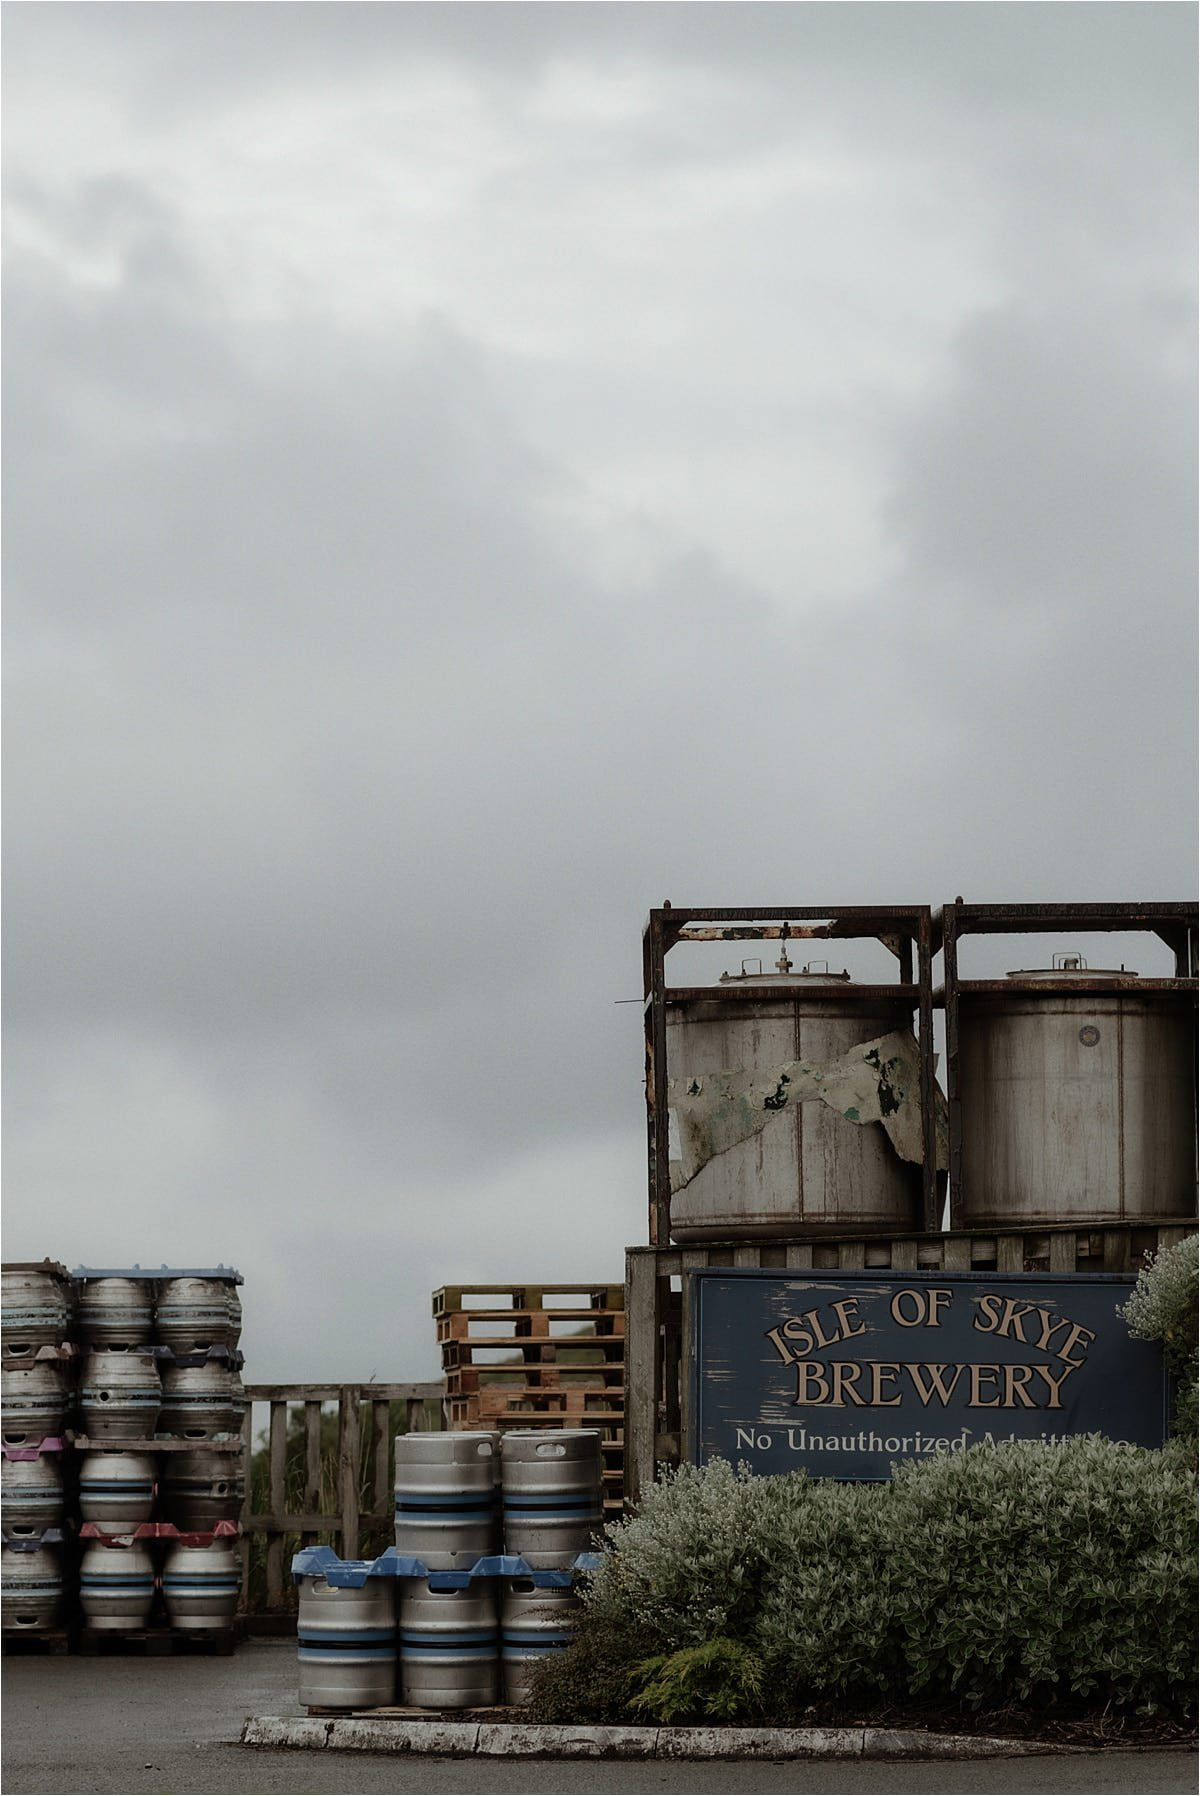 skye brewery on isle of skye